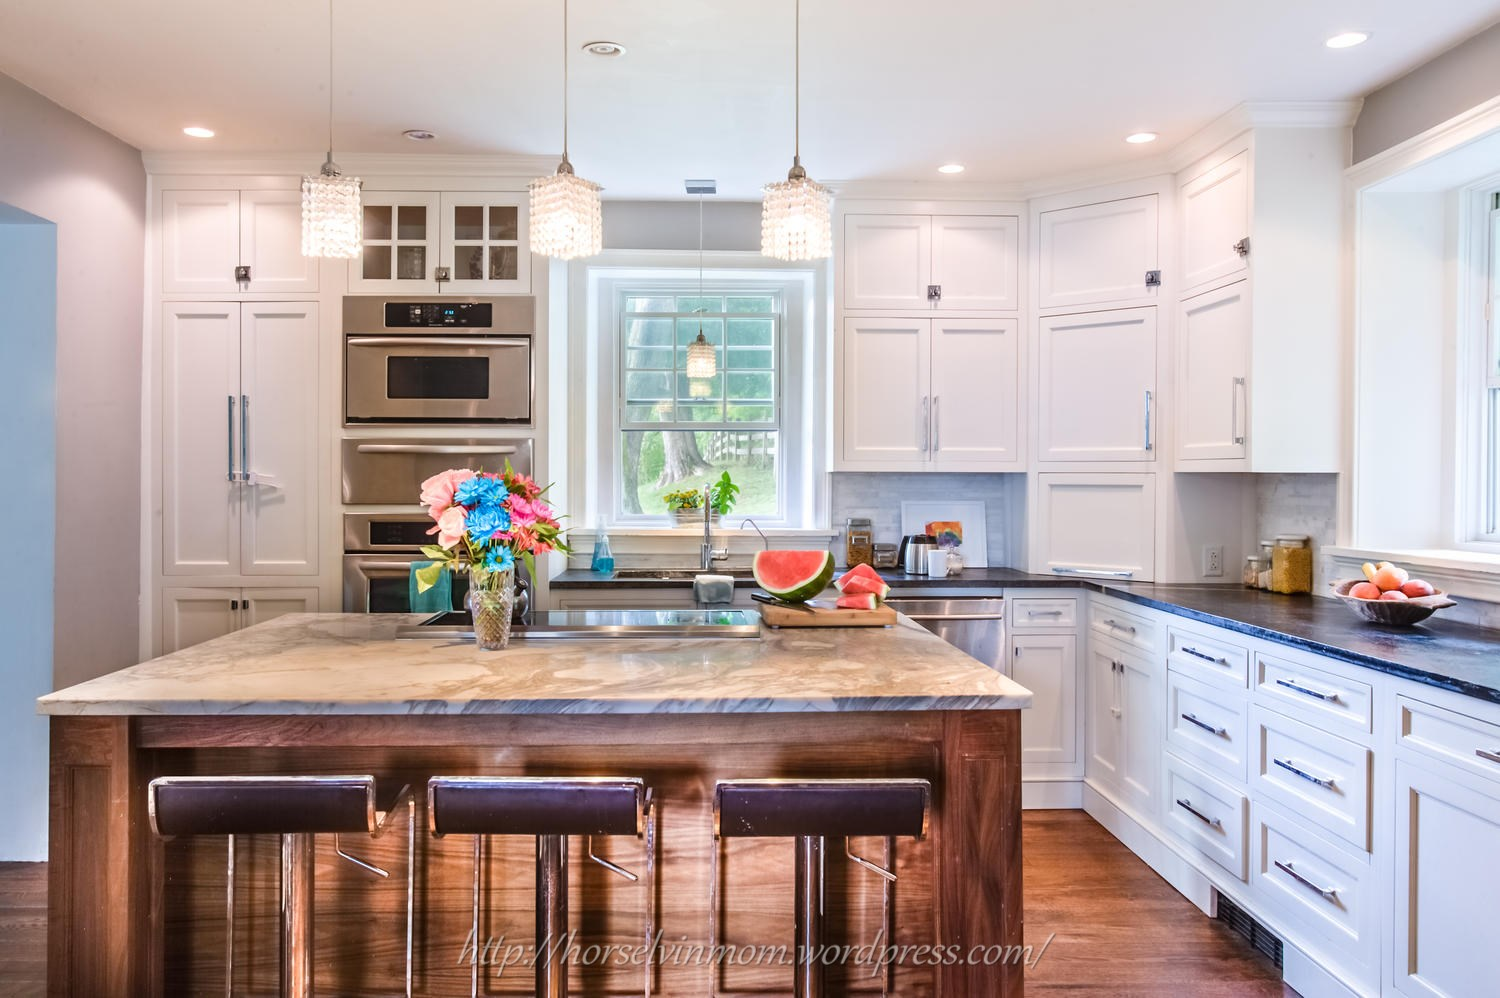 White Country Kitchen Remodel With Chrome Barstools Featured At Remodelaholic